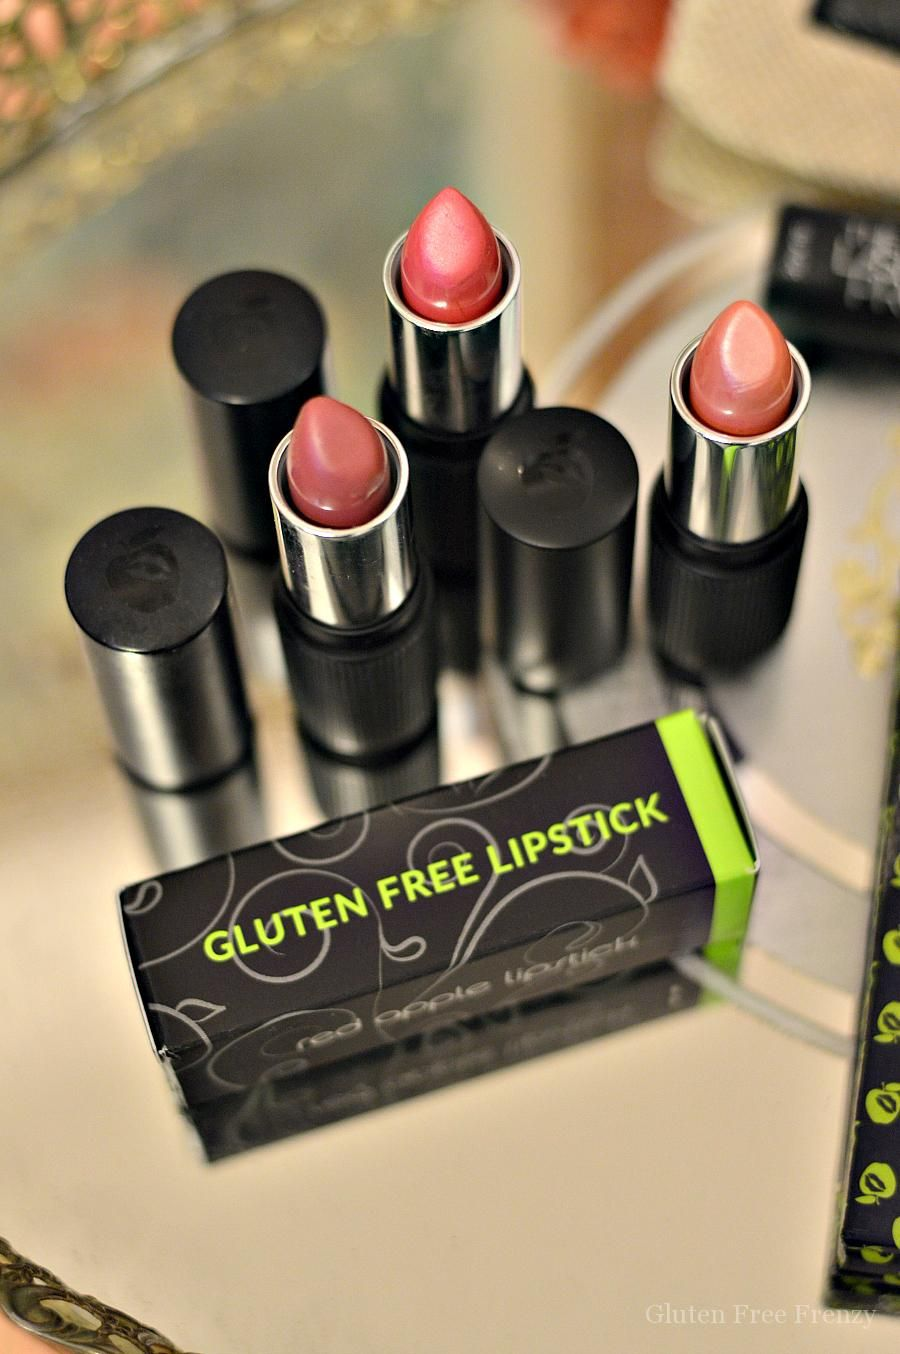 Red Apple Lipstick glutenfree makeup is perfect for all